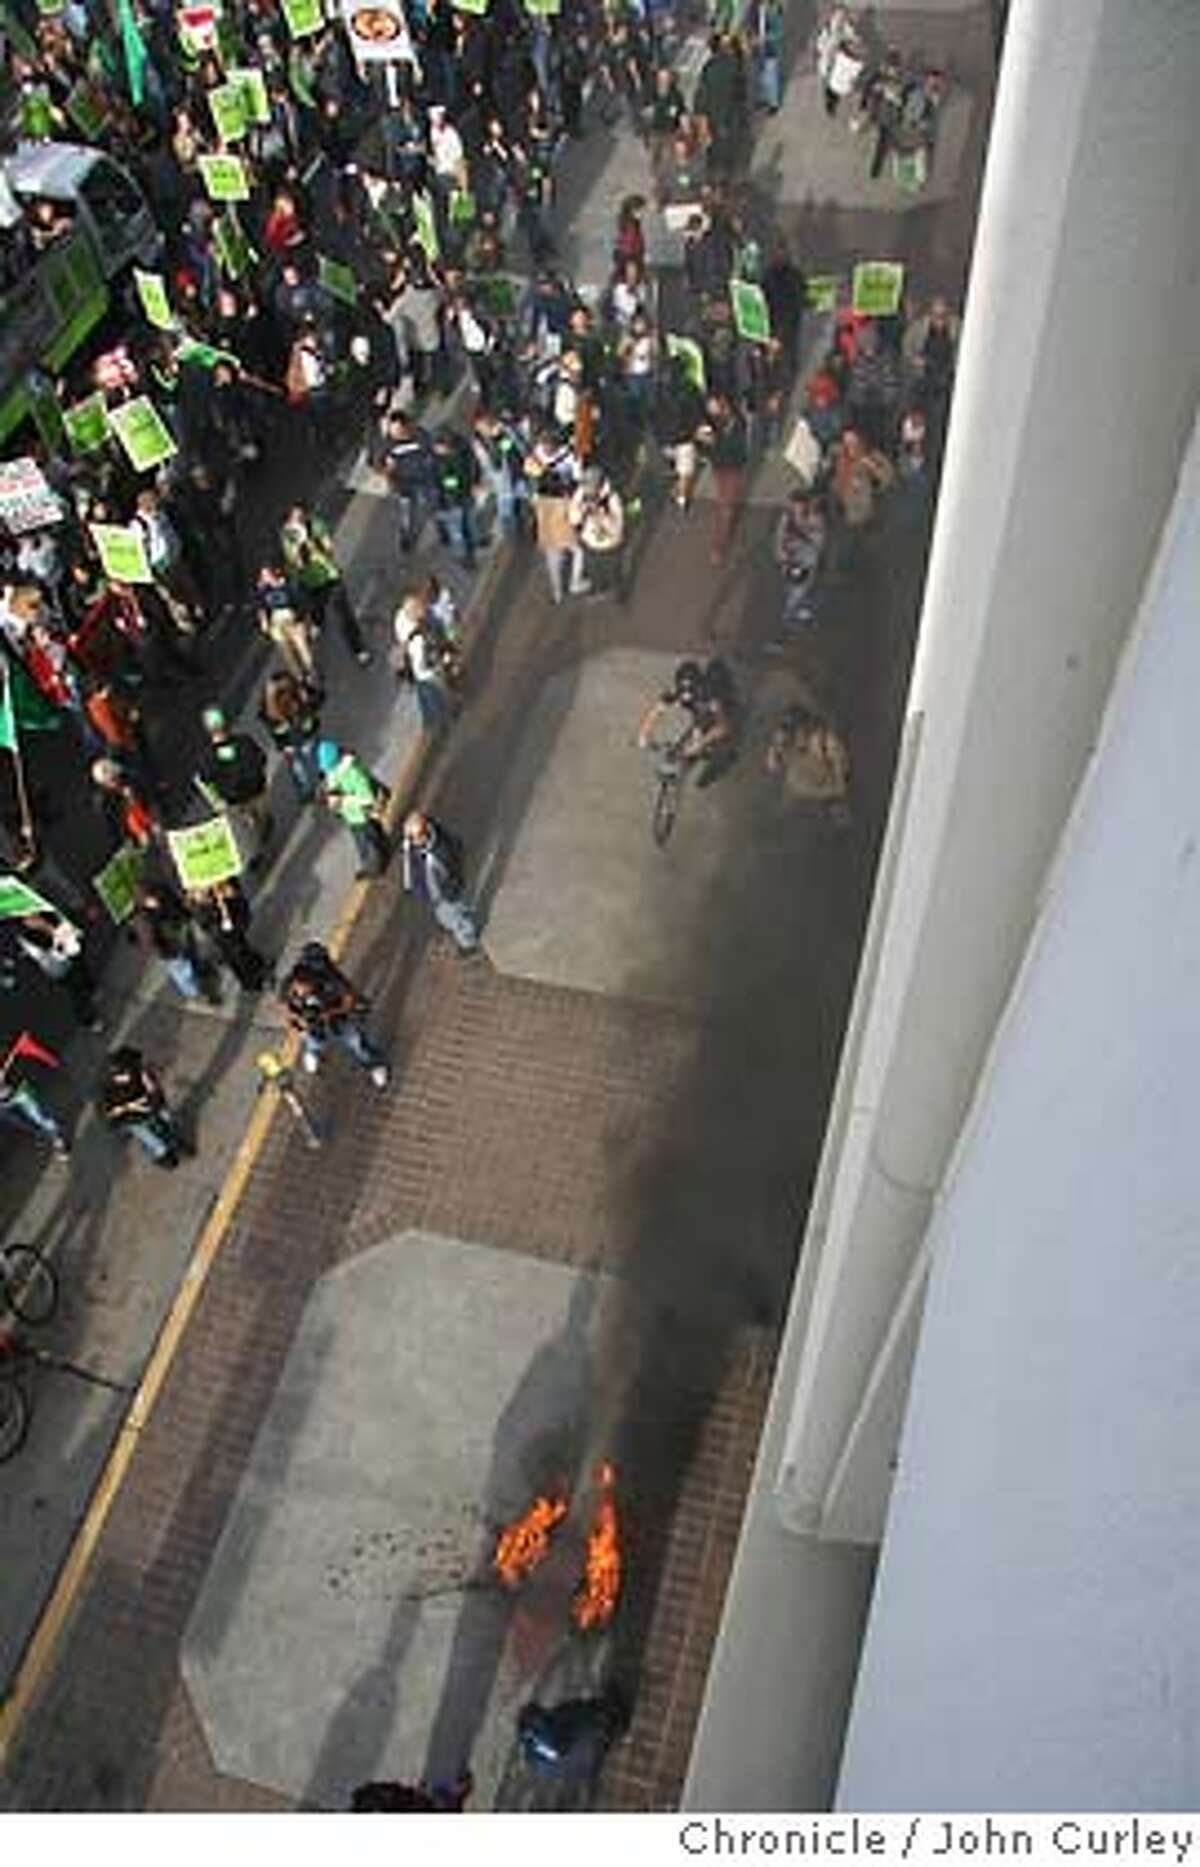 Protestors marching by the offices of the San Francisco Chronicle hurled an incediary device at the building and caused a fire on the sidewalk. Credit: John Curley/Chronicle